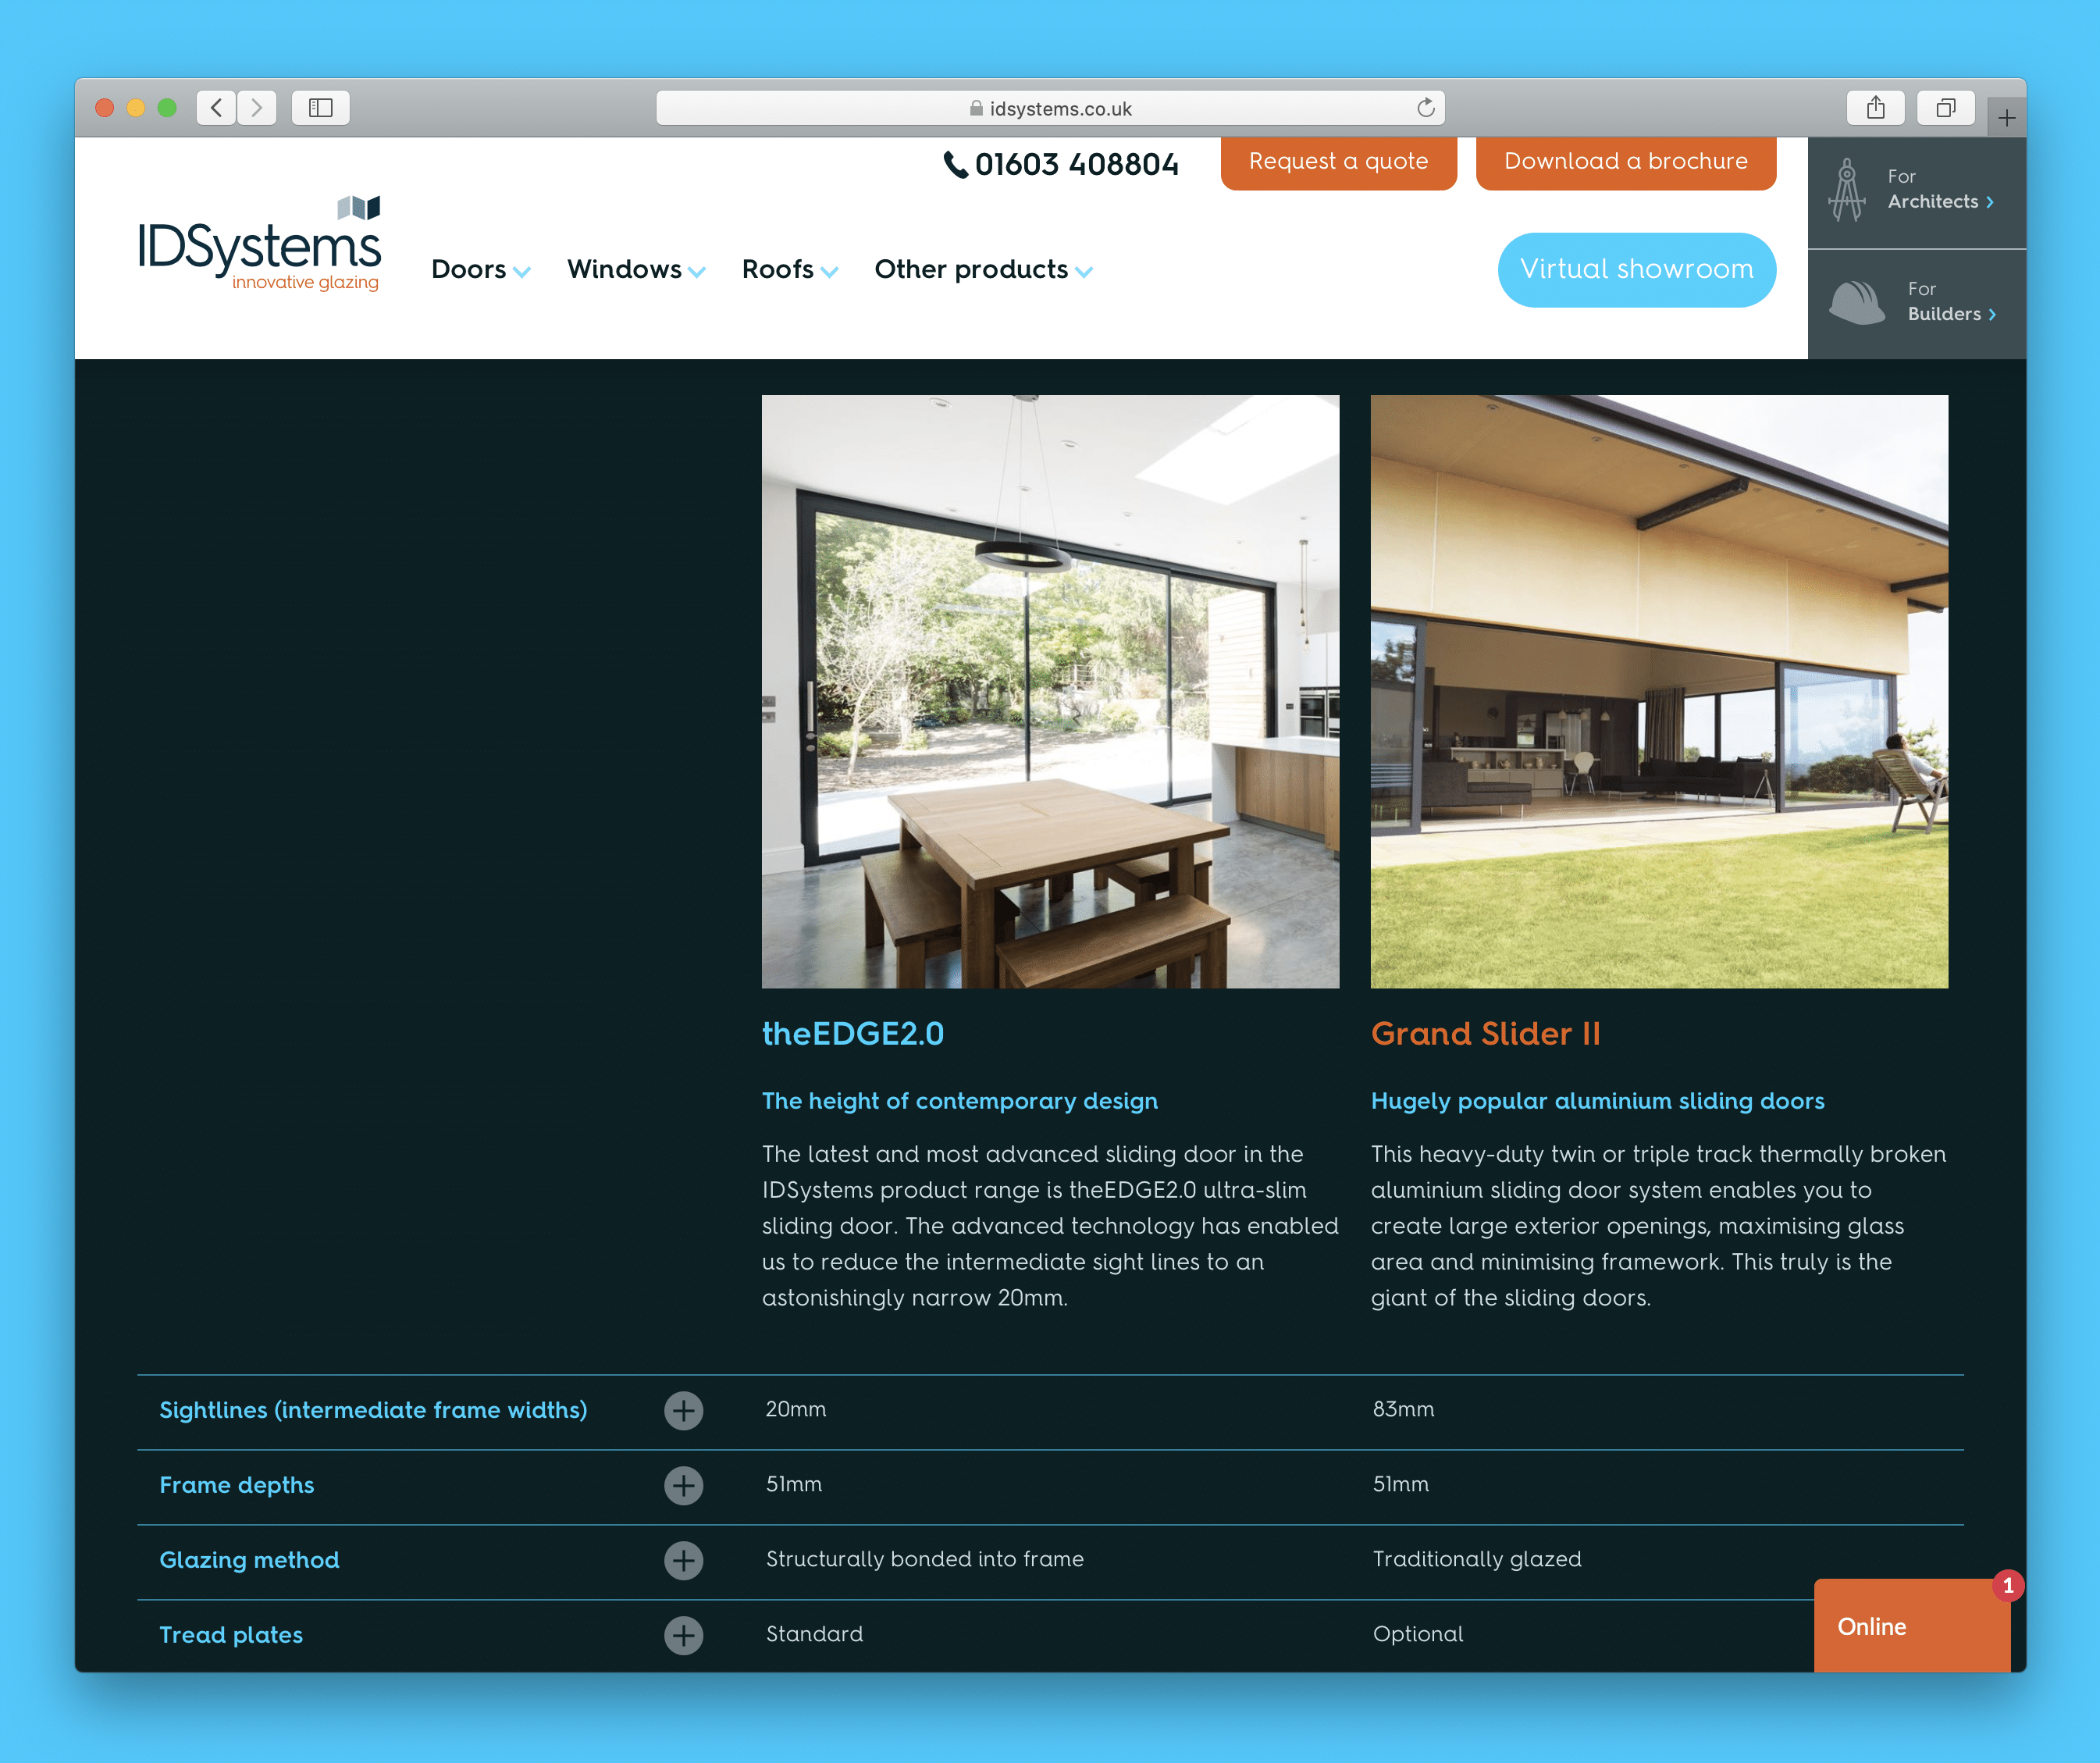 IDSystems website – comparison between theEDGE2.0 and Grand Slider II Sliding doors